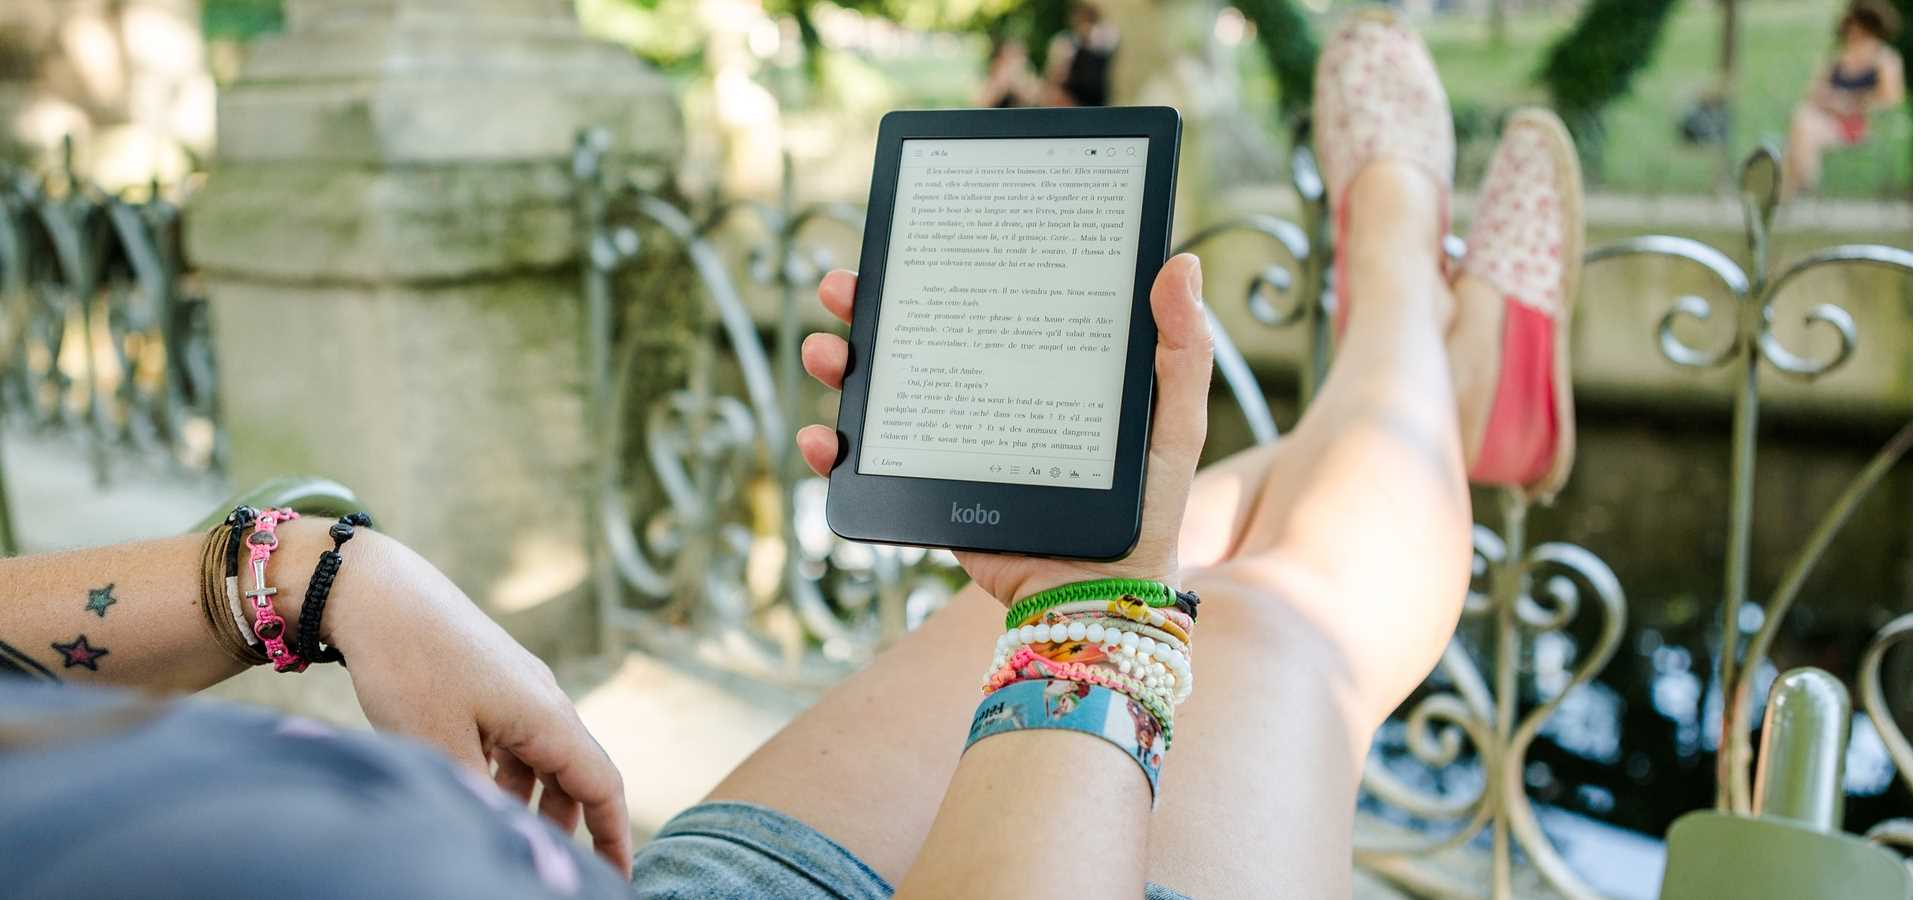 person relaxing outdoors with an e Reader